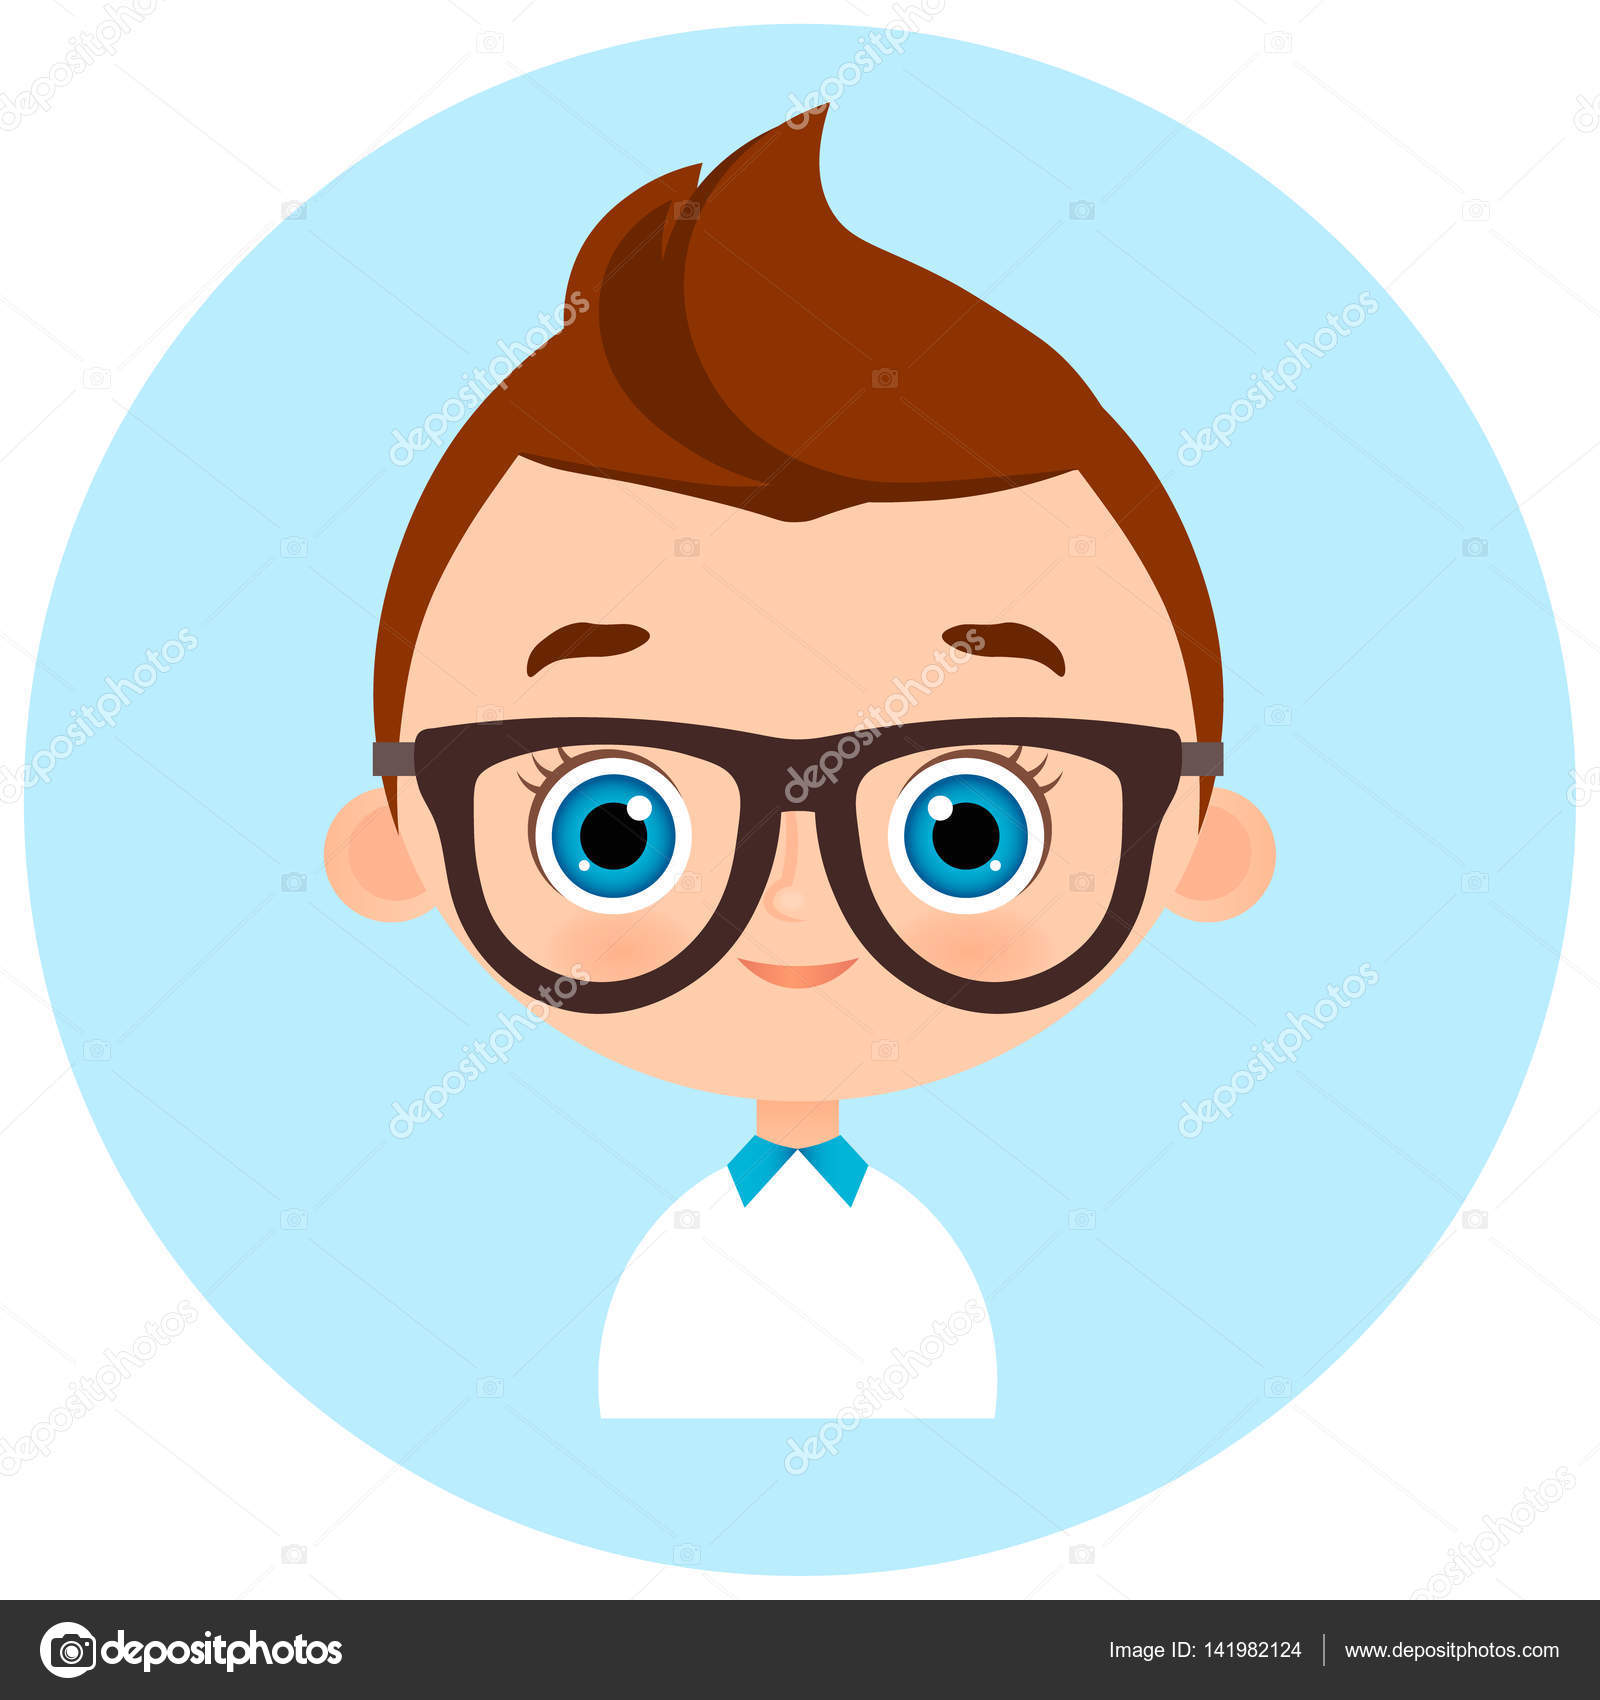 faces avatar in circle portrait young boy with glasses vector